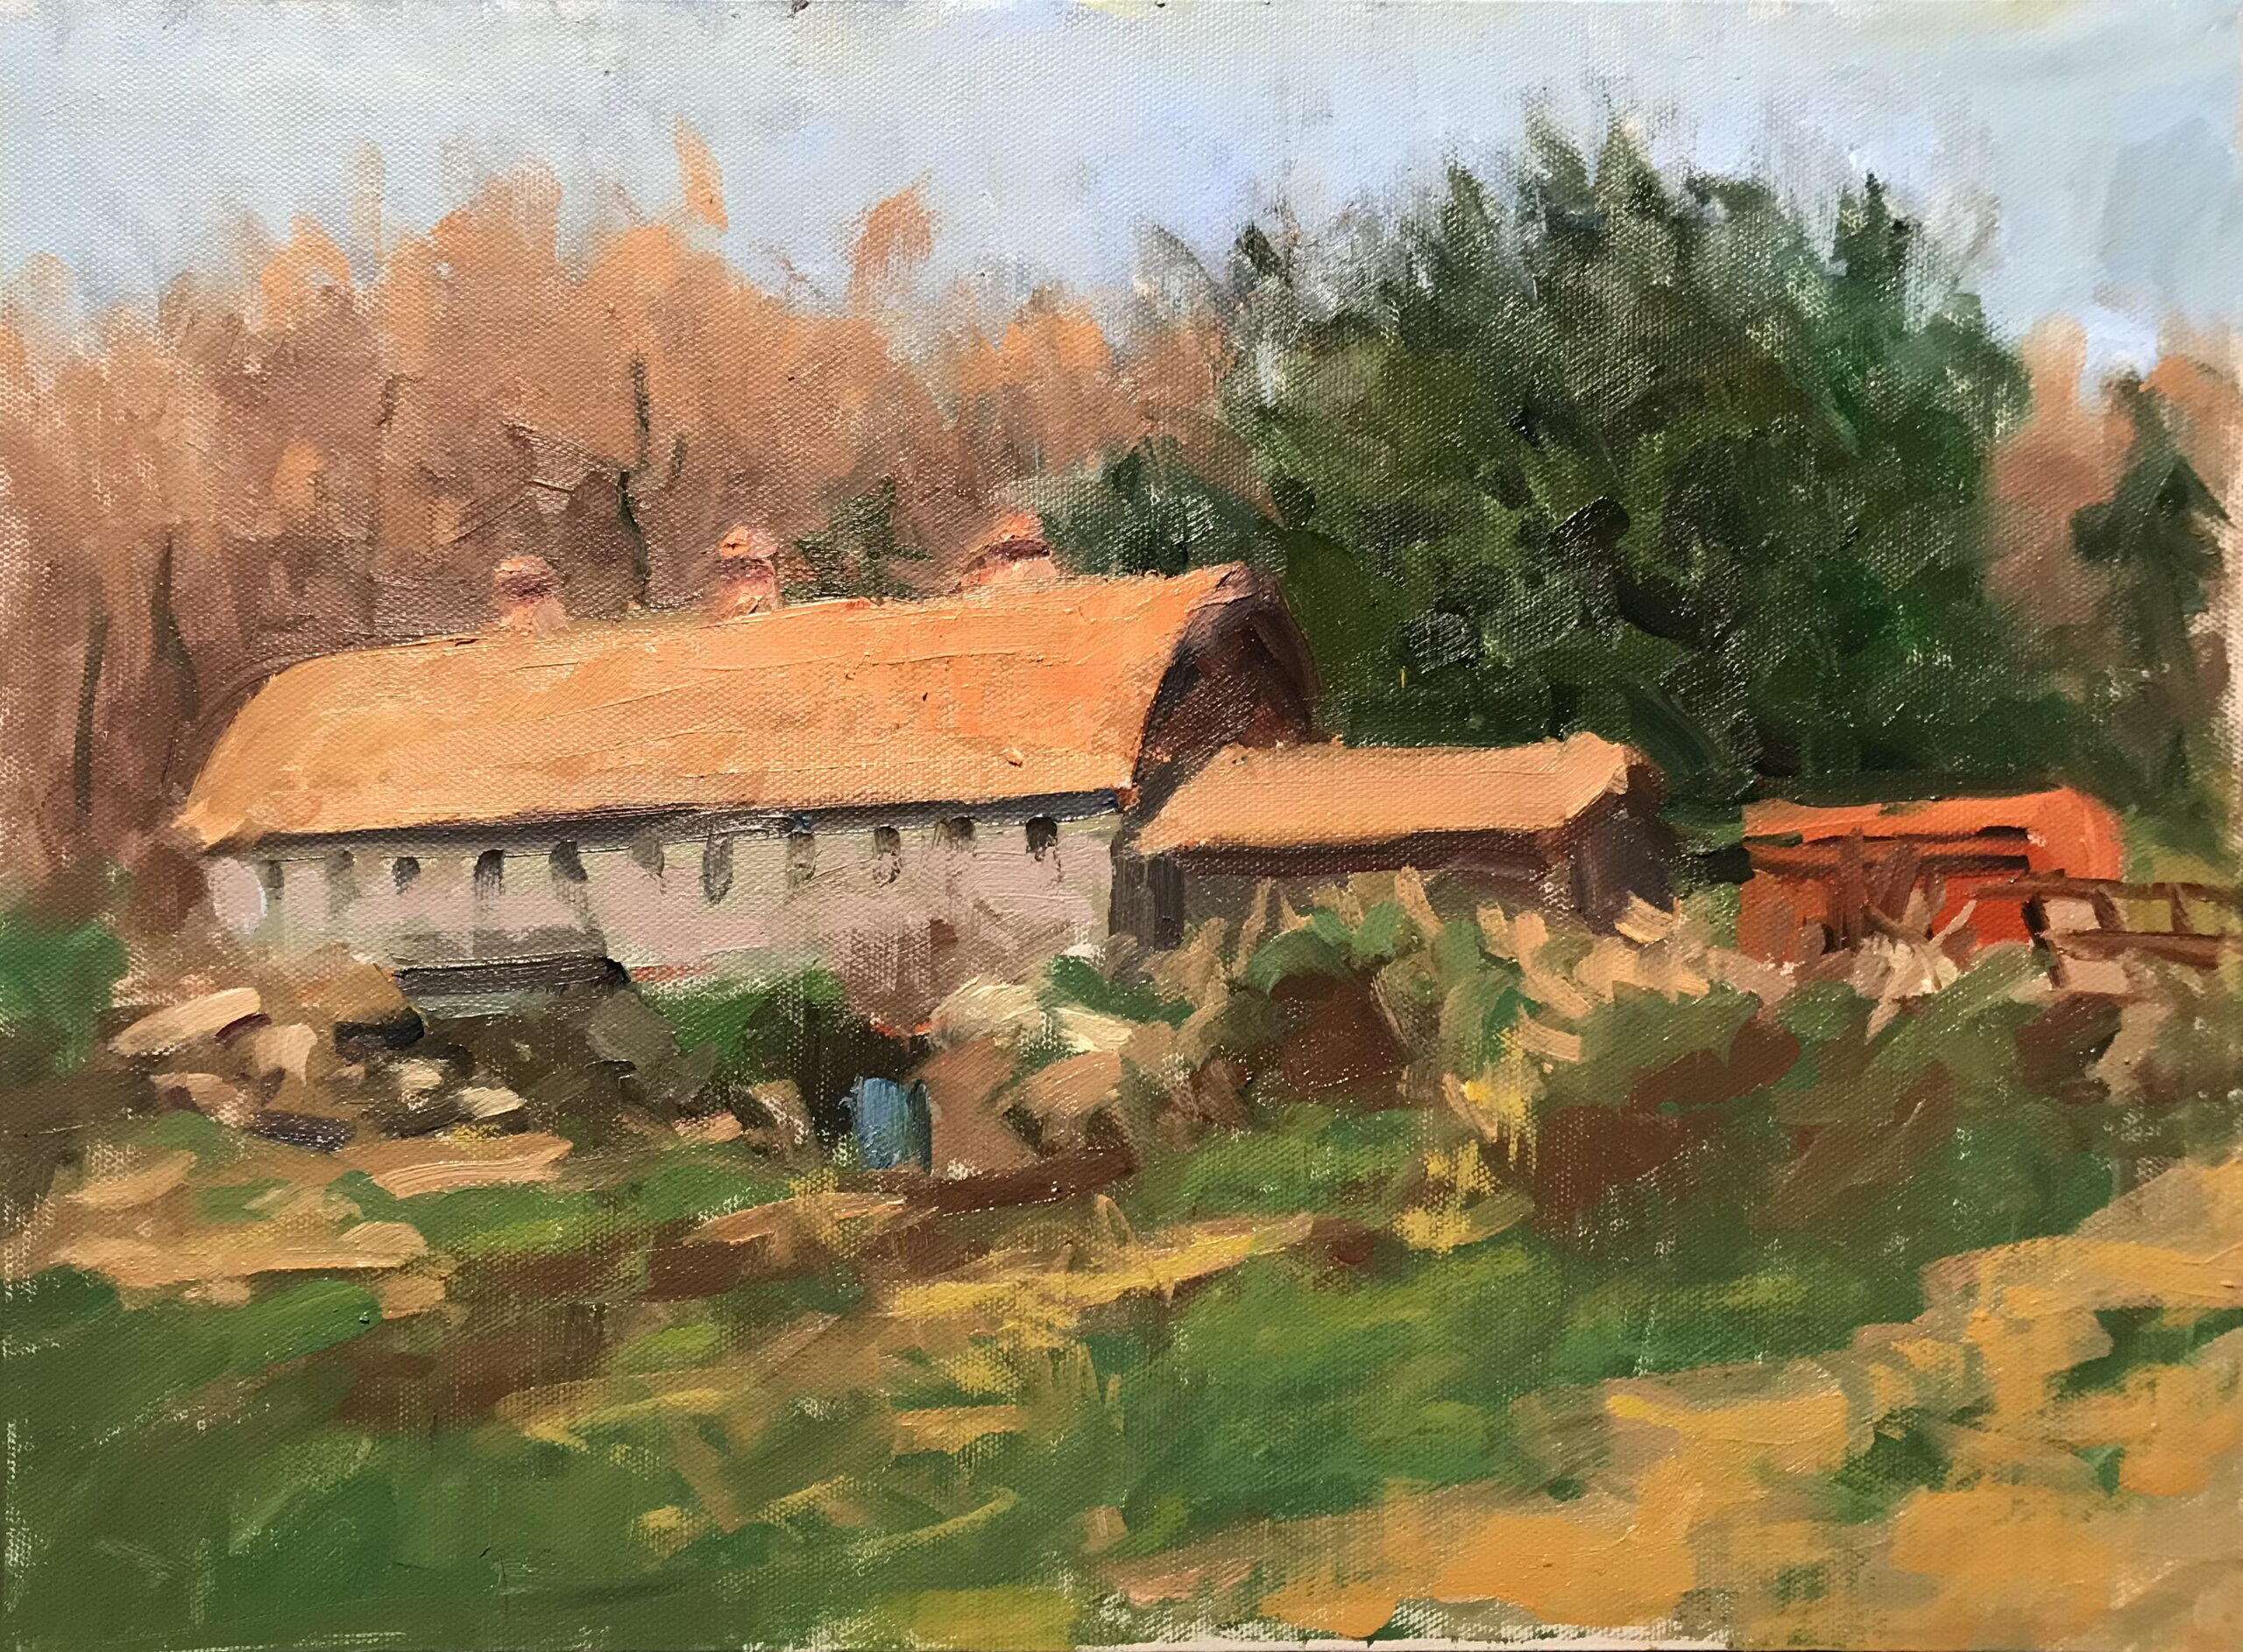 Phil's Barn, Oil on Canvas on Panel, 12 x 16 Inches, by Susan Grisell, $325